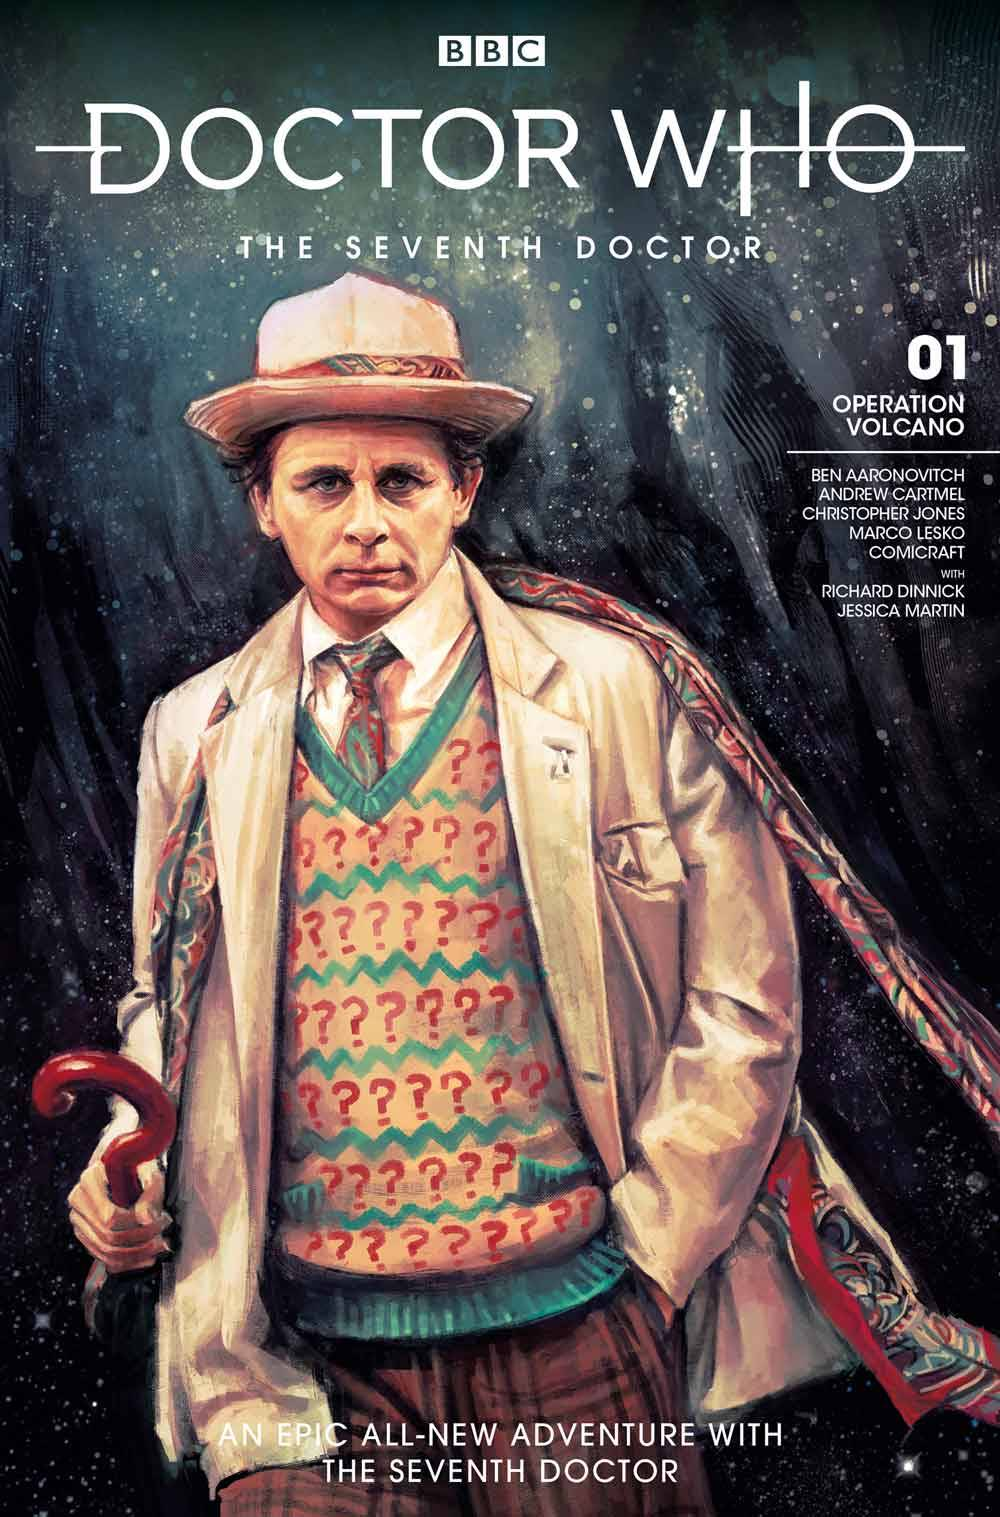 729128_doctor-who-7th-1 ComicList: New Comic Book Releases List for 06/06/2018 (1 Week Out)